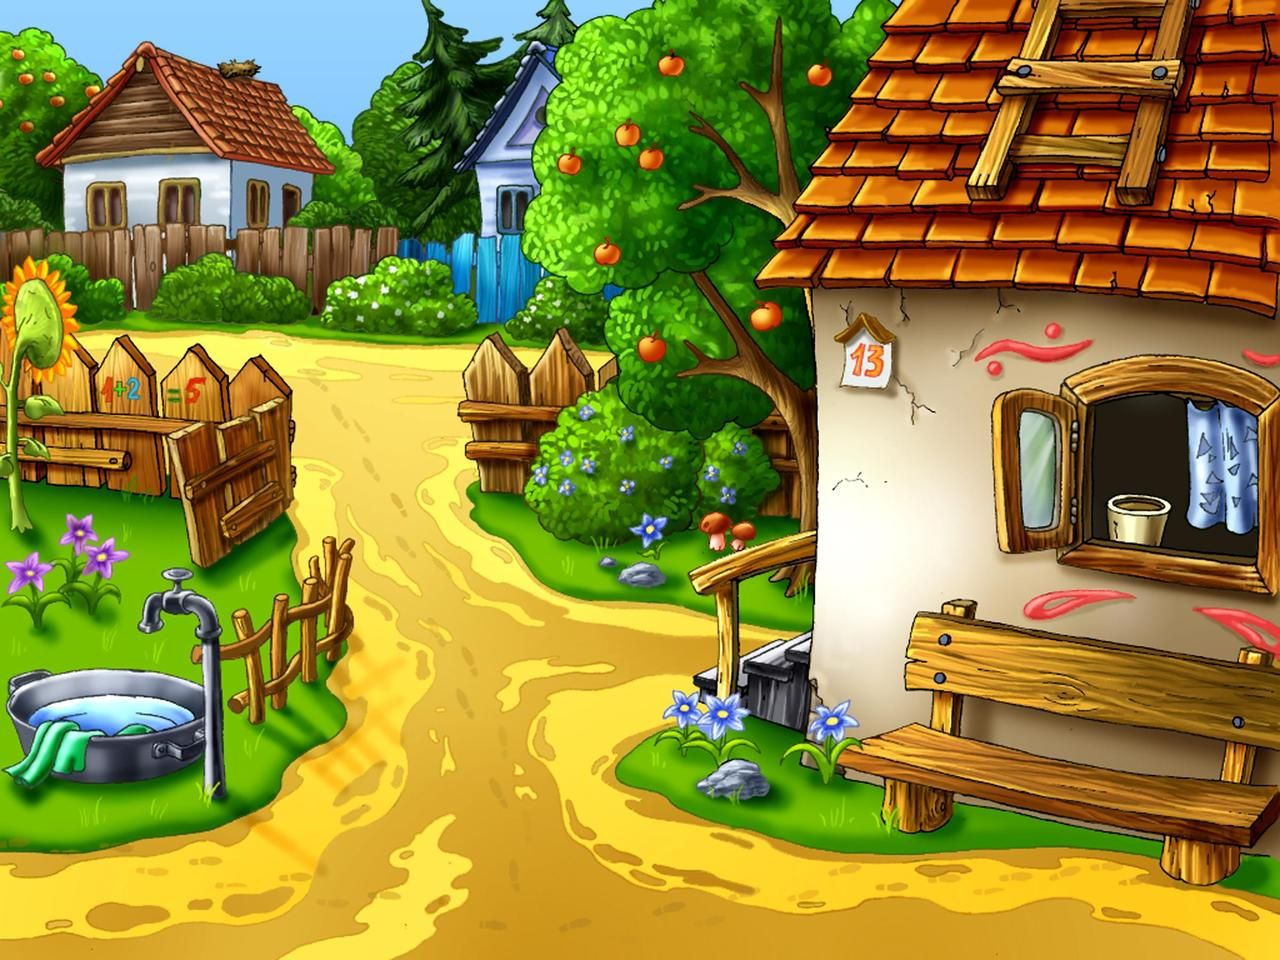 House Cartoon Google Search Background Images Wallpapers Beautiful Nature Wallpaper Nature Wallpaper